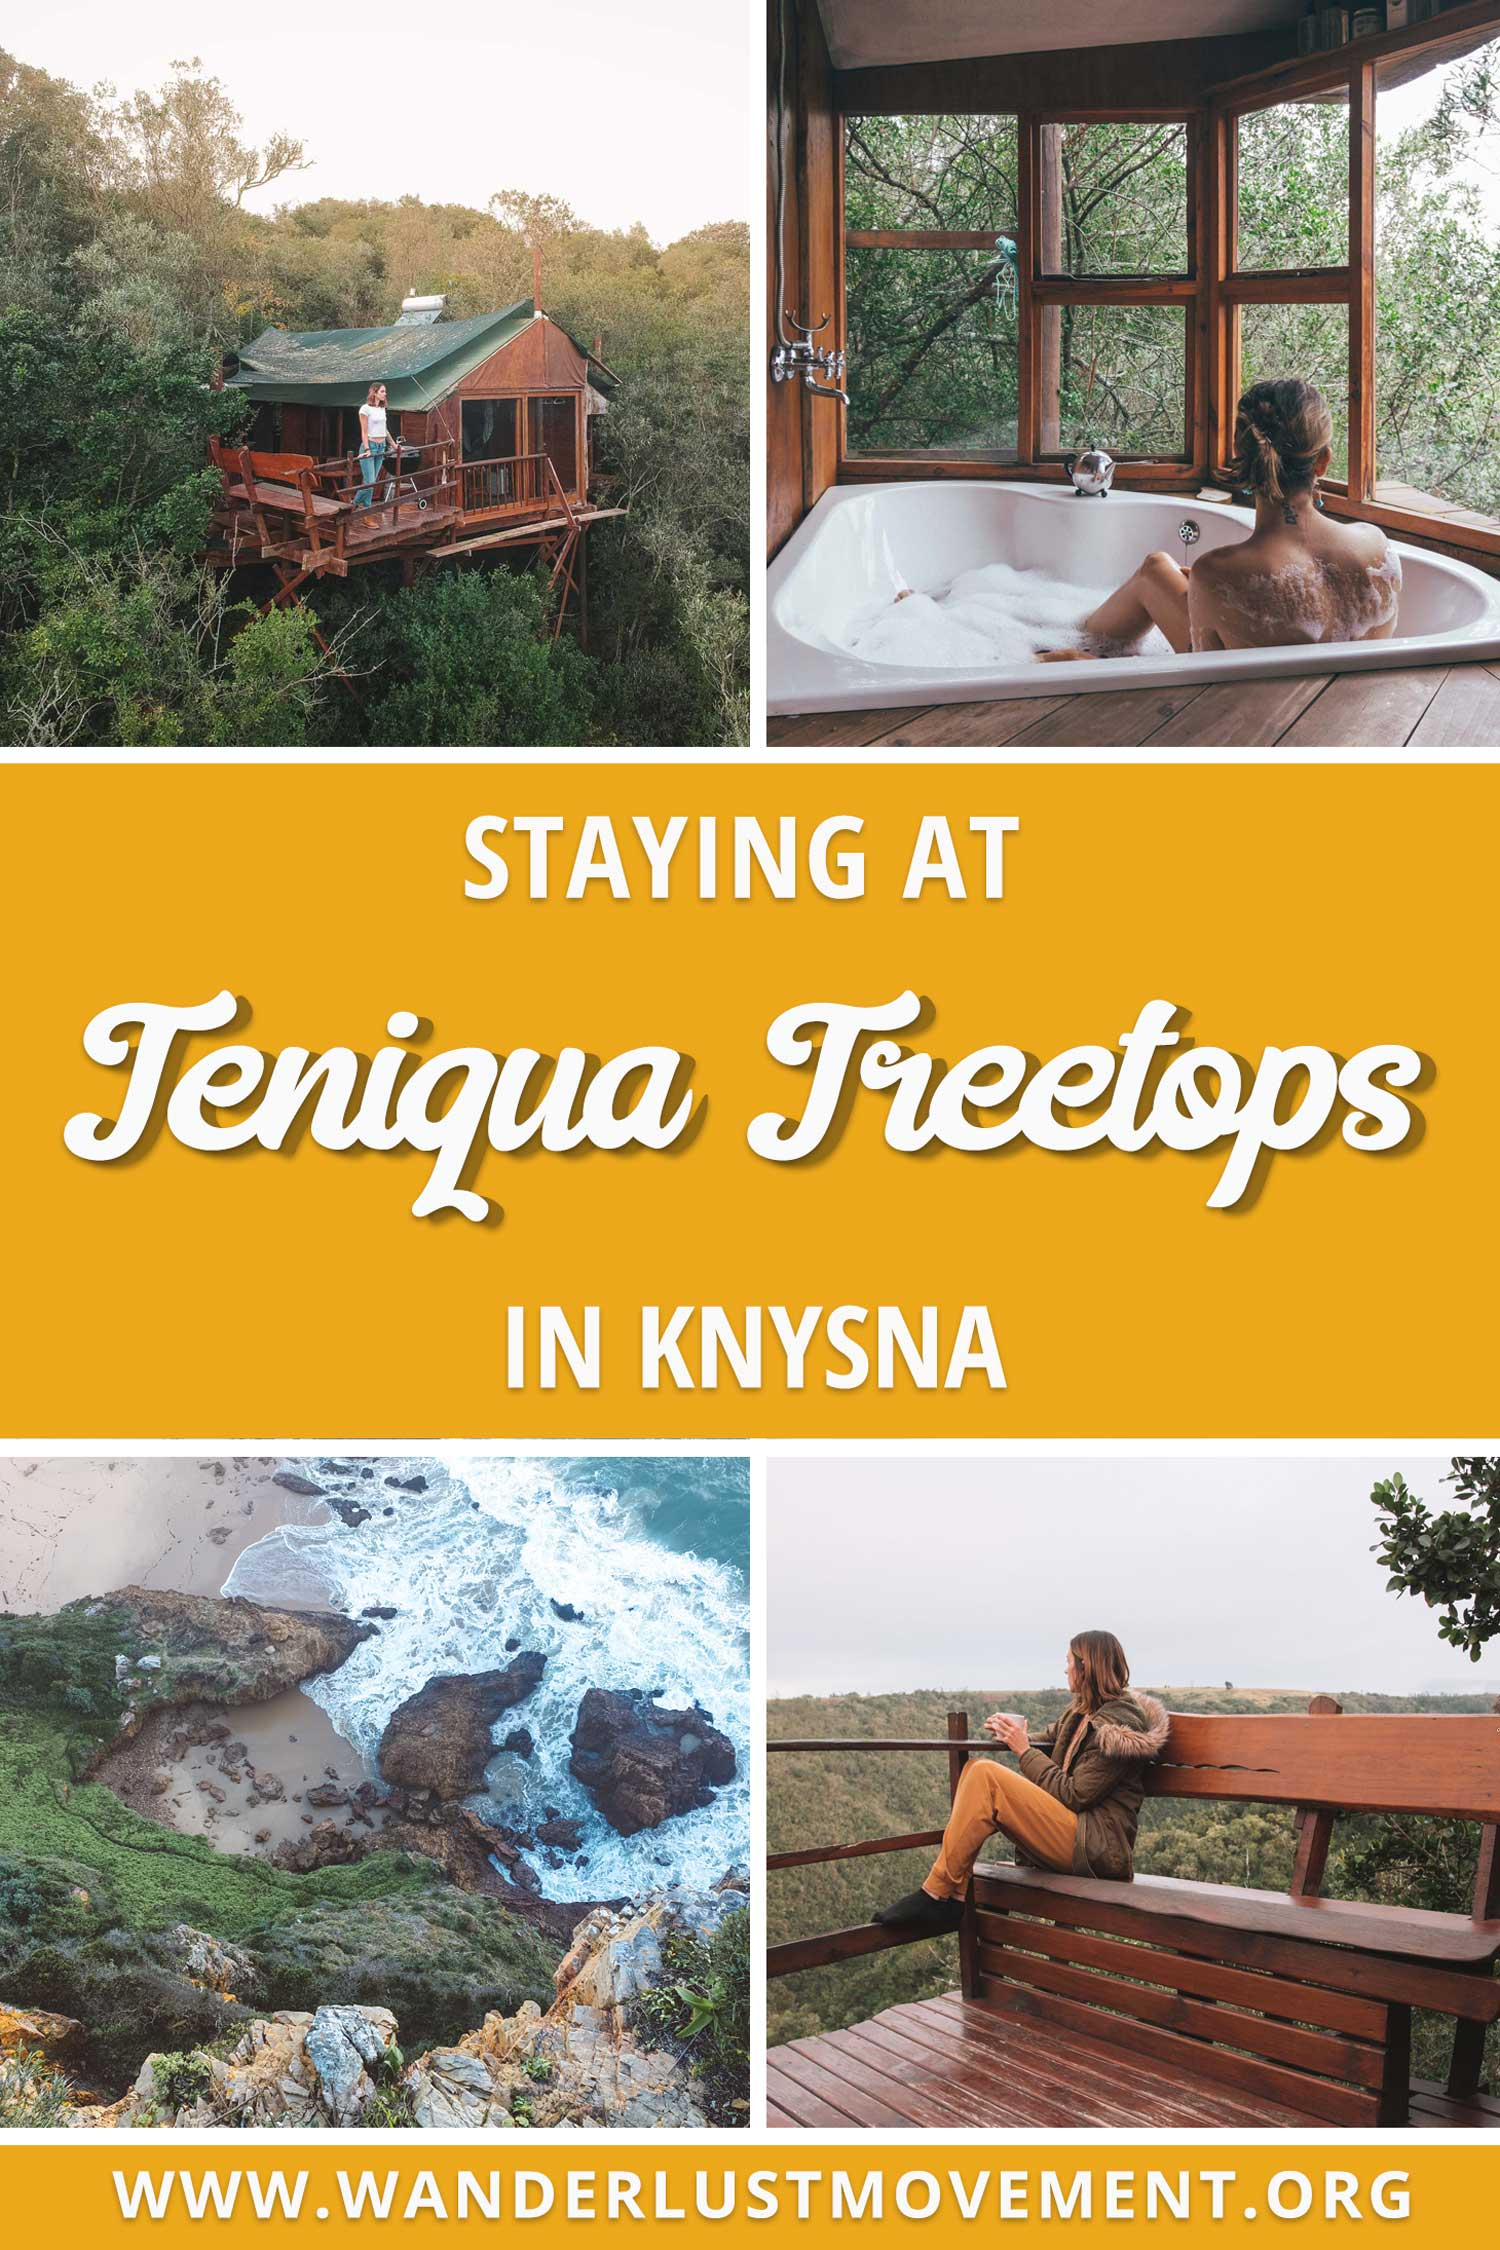 Staying at Teniqua Treetops in Knysna